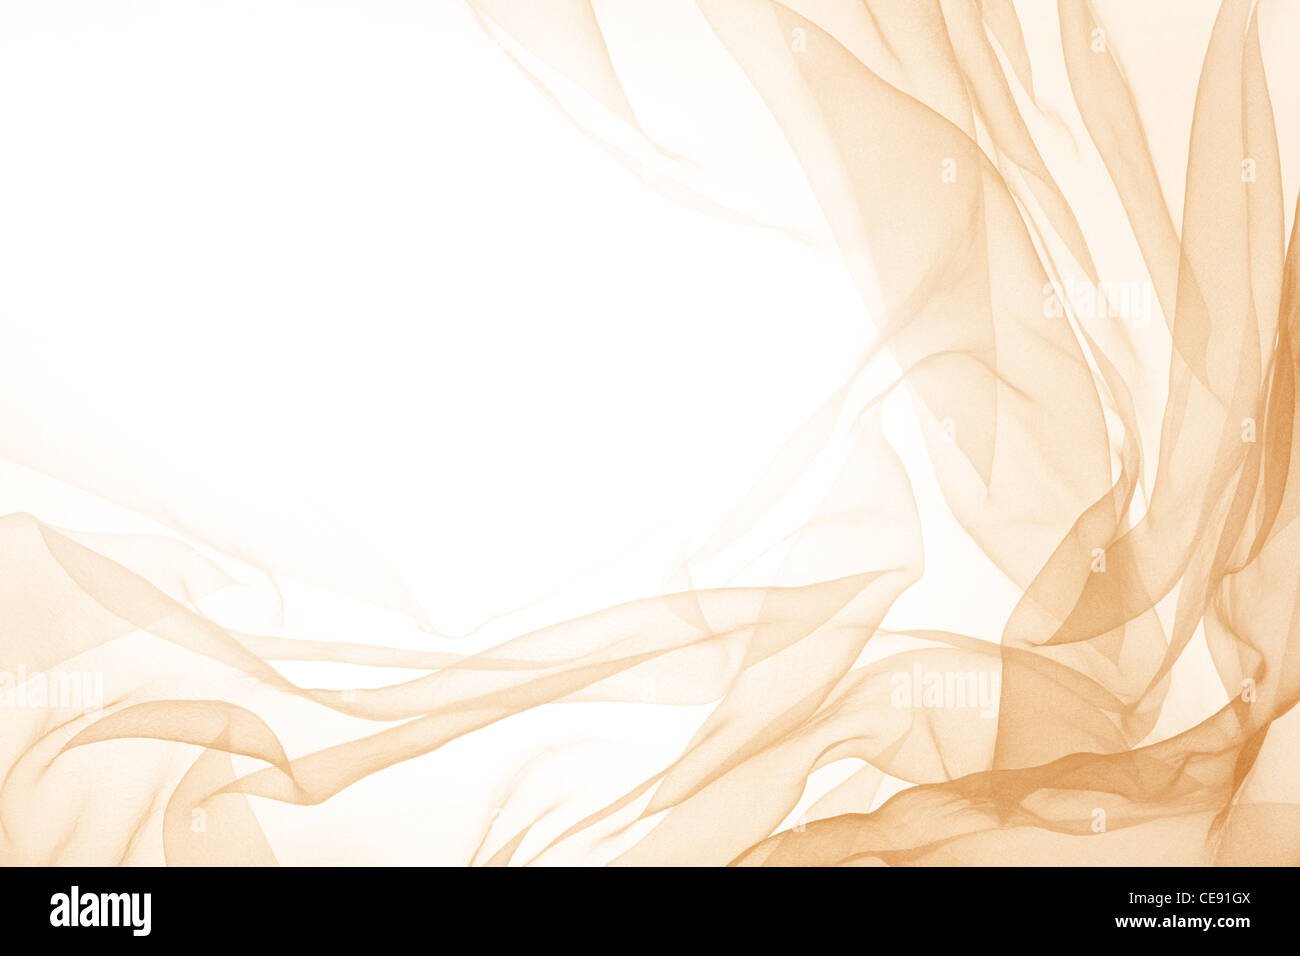 Abstract soft chiffon texture background - Stock Image